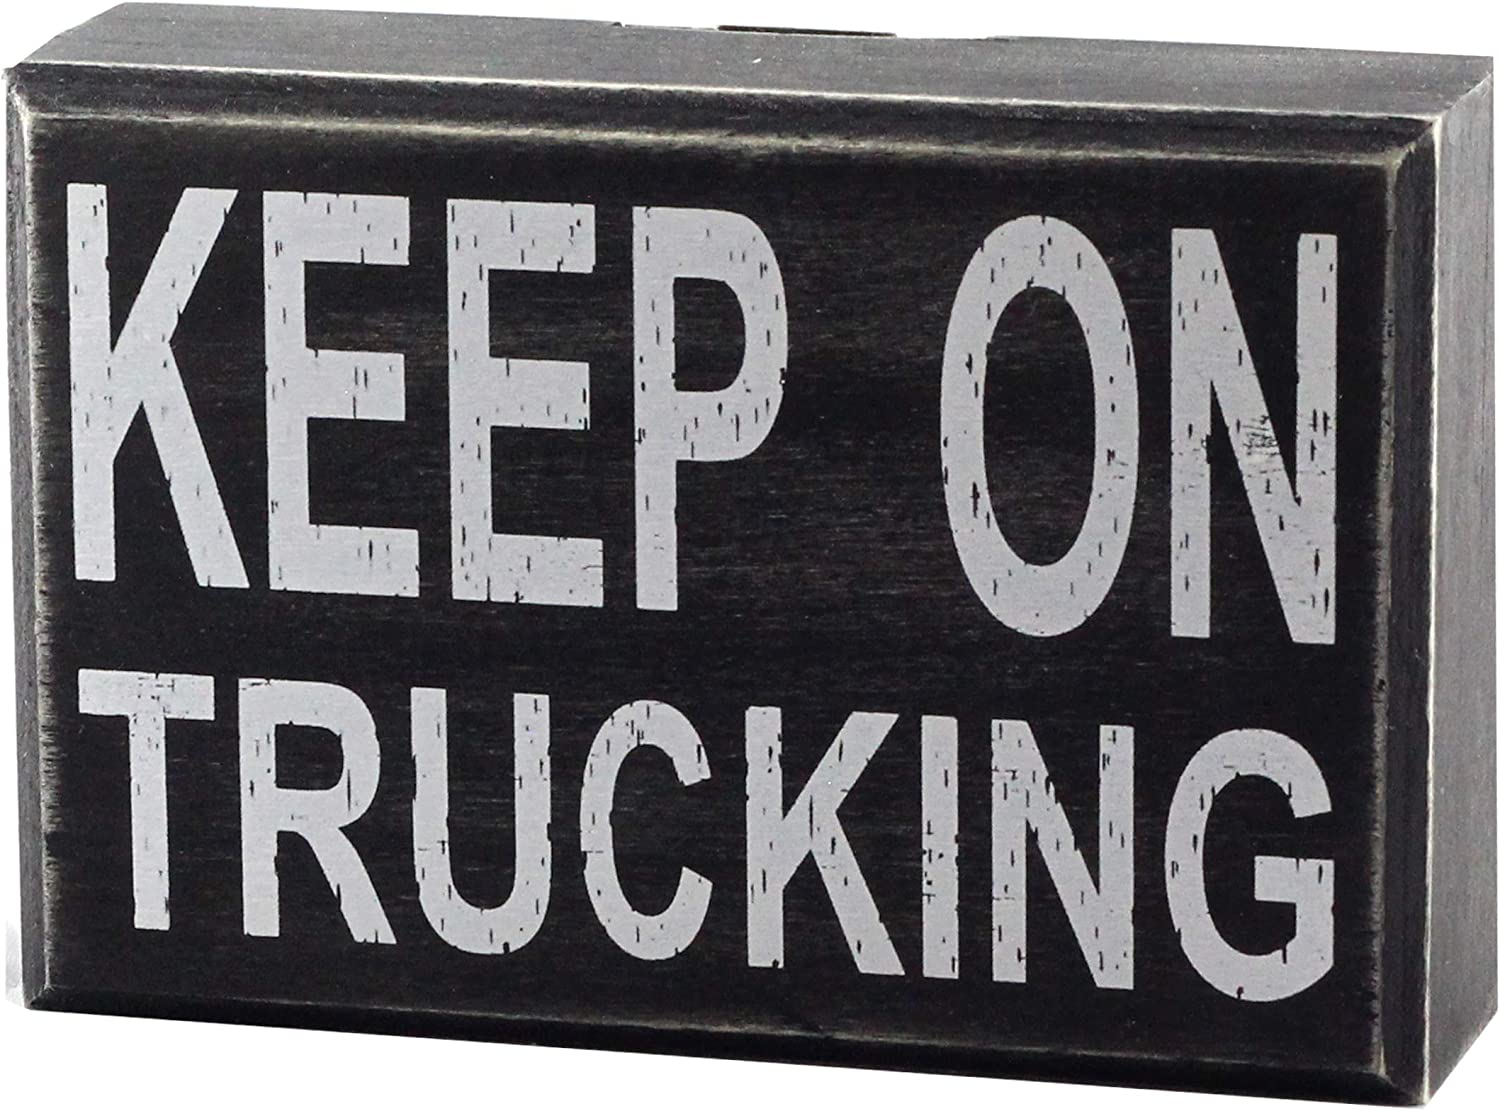 """Keep On Trucking 6""""x4"""" Motivational Wall Art Decor Box Sign with Quotes for Truck Office Desk Home Kitchen Bedside Table or Shelf by Break The Chain"""